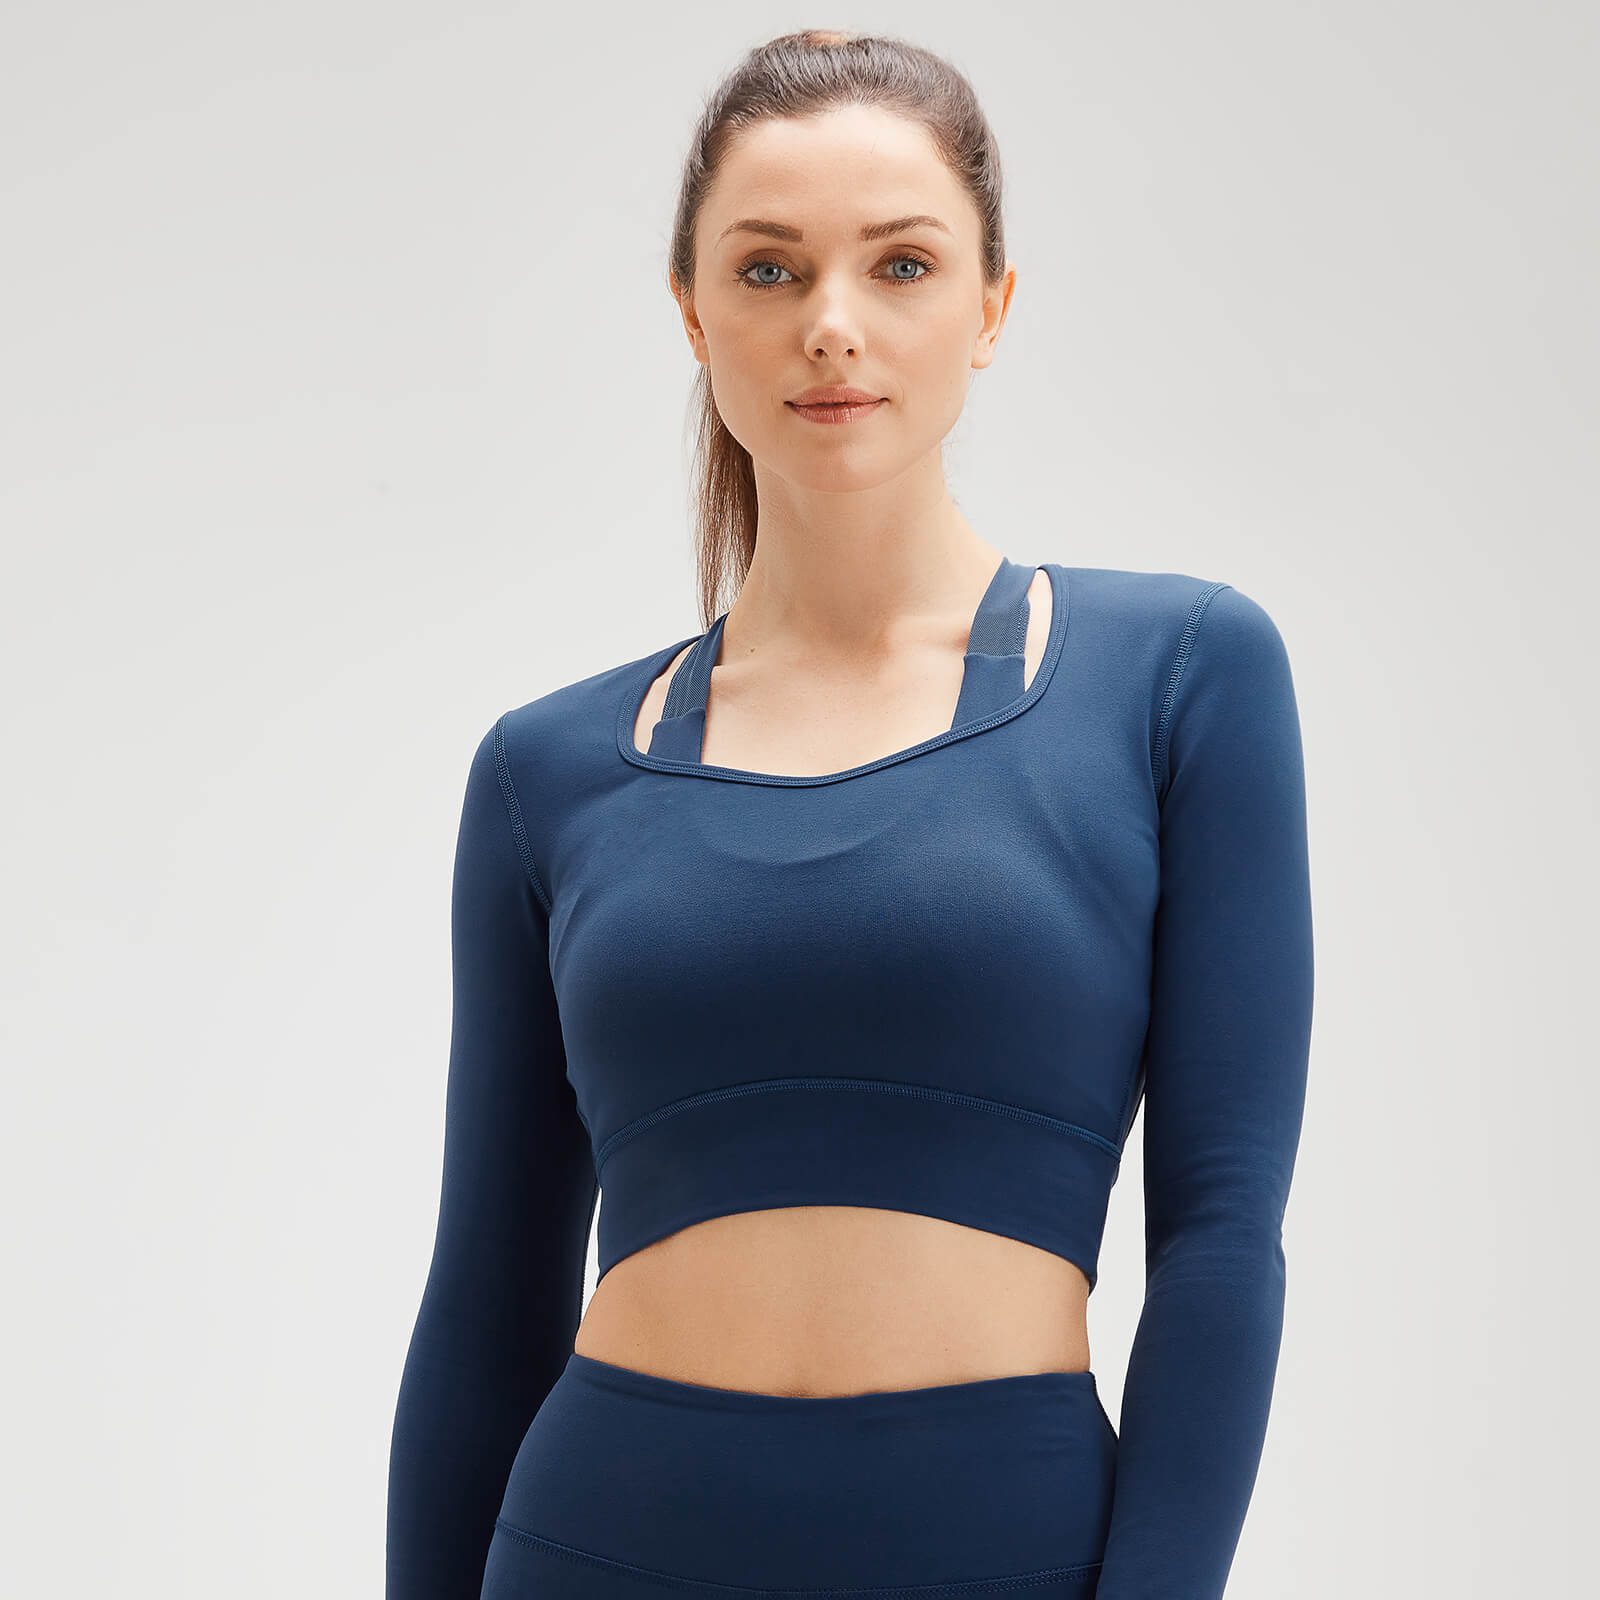 MP Women's Power Open Back Crop Top - Dark Blue - M